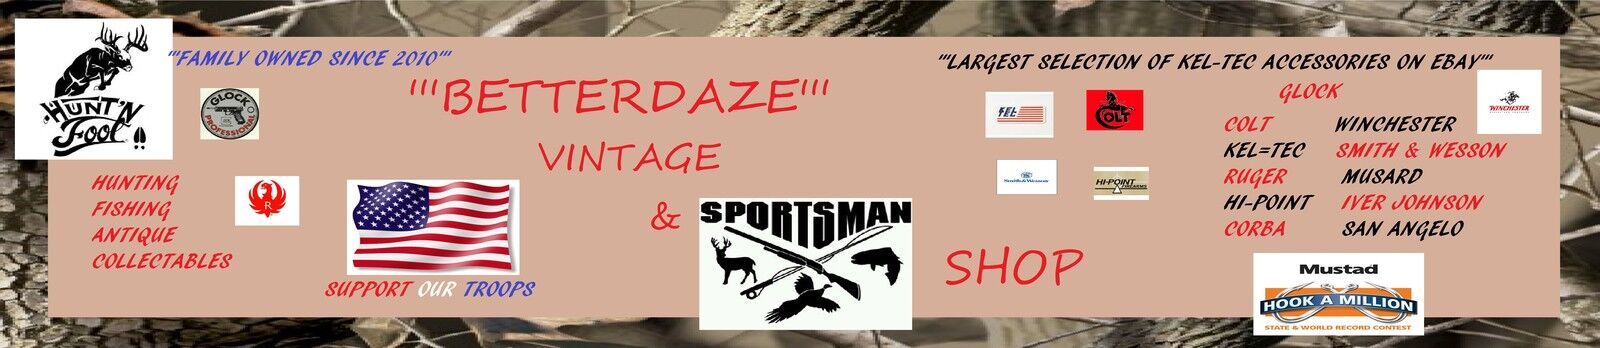 Betterdaze Vintage & Sportsman Shop